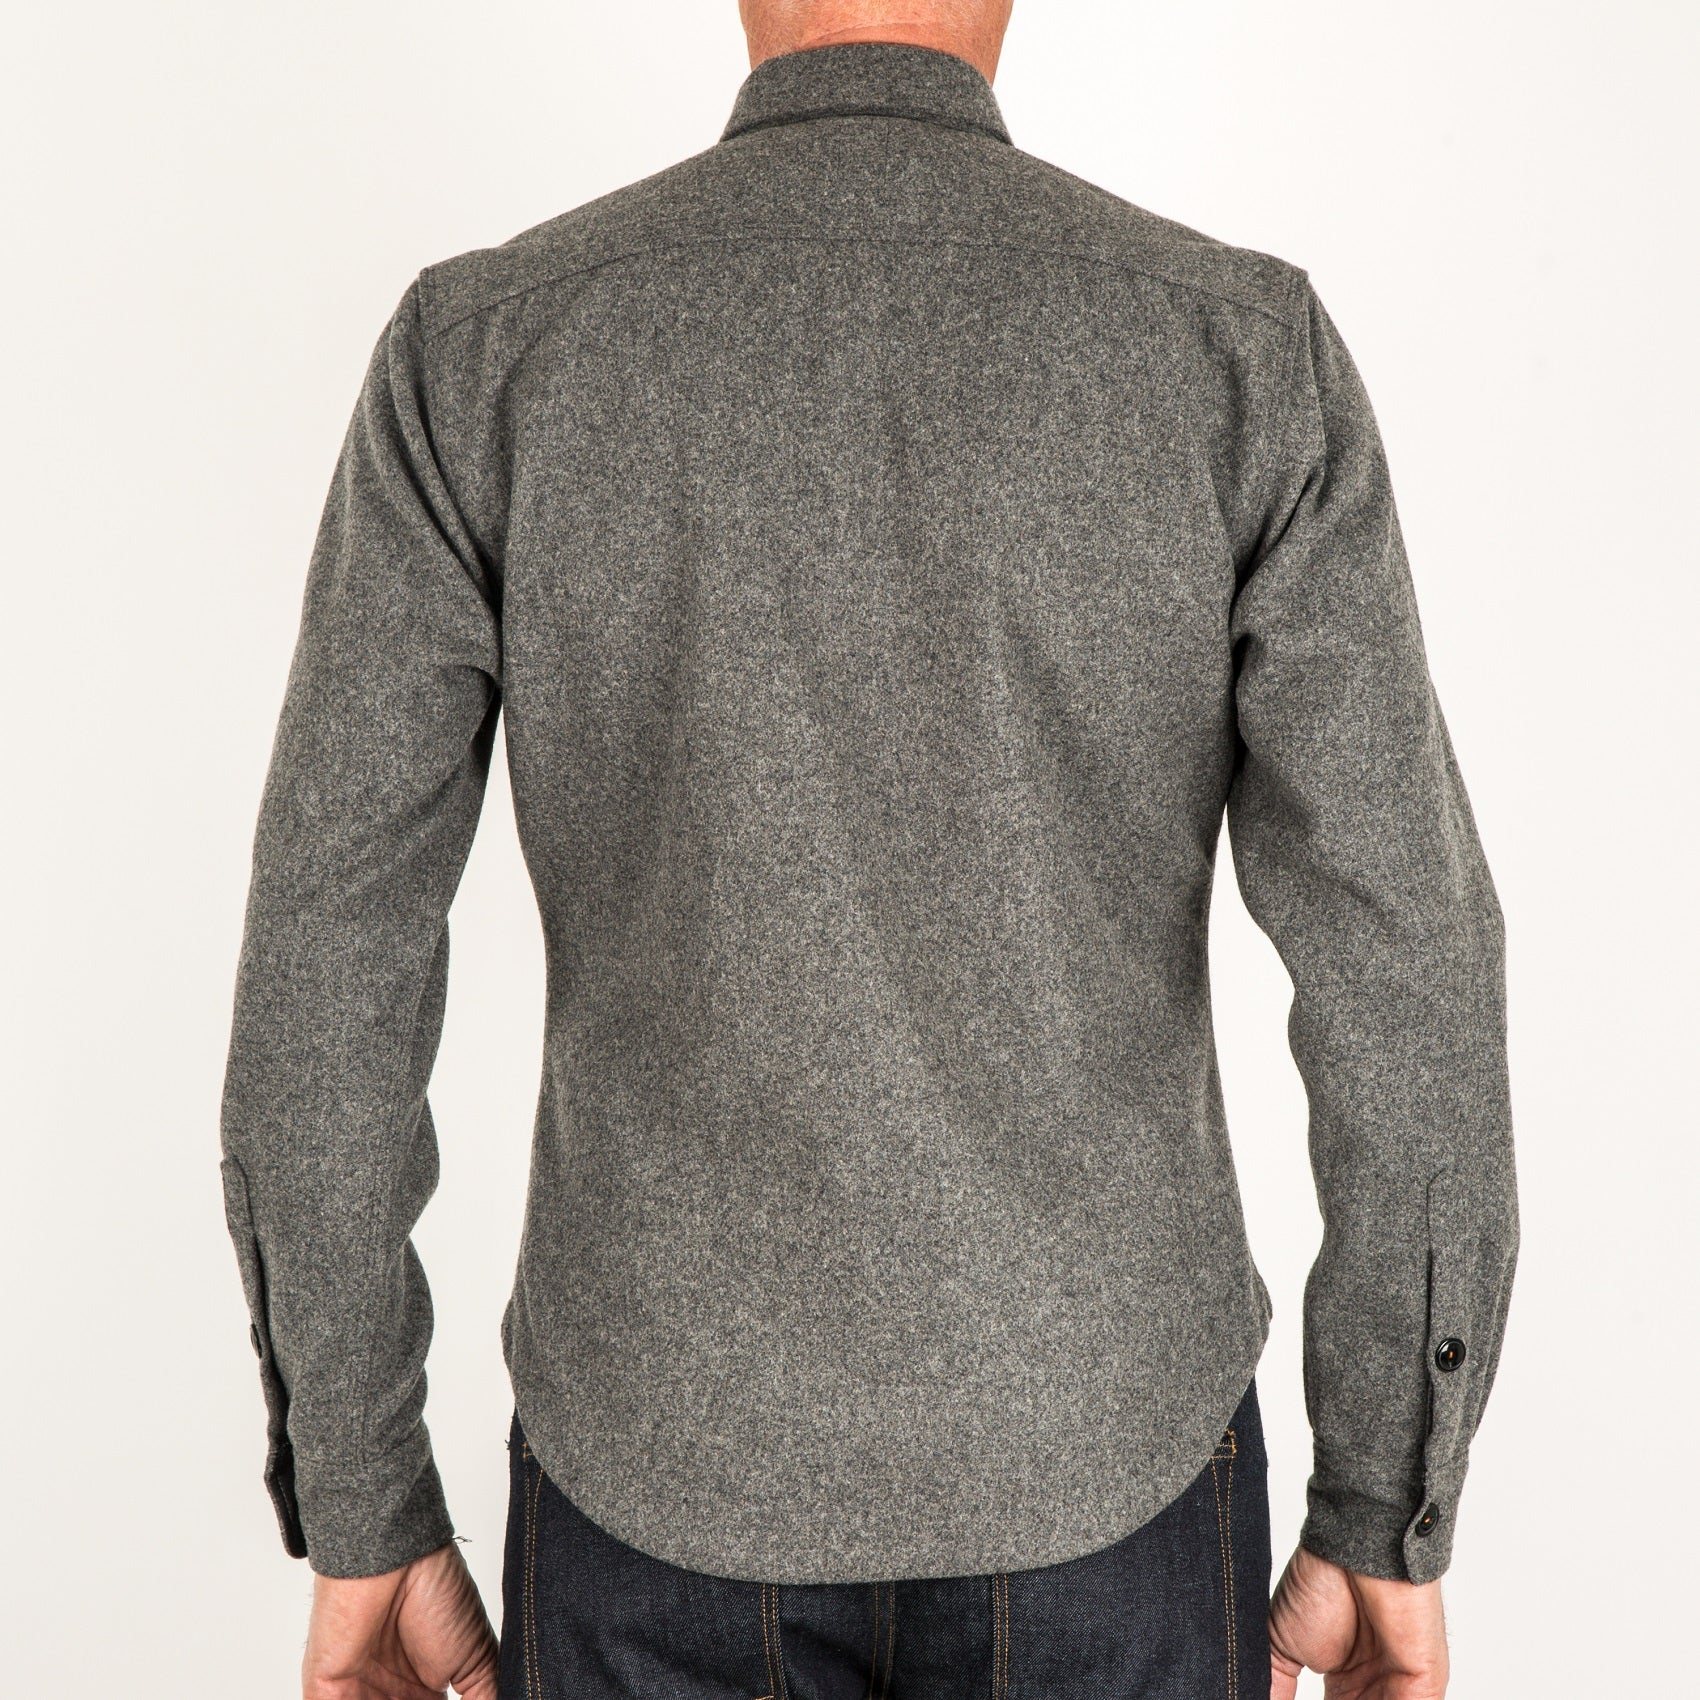 The Anvil Shirt Jacket - Charcoal Gray - Heavy Melton